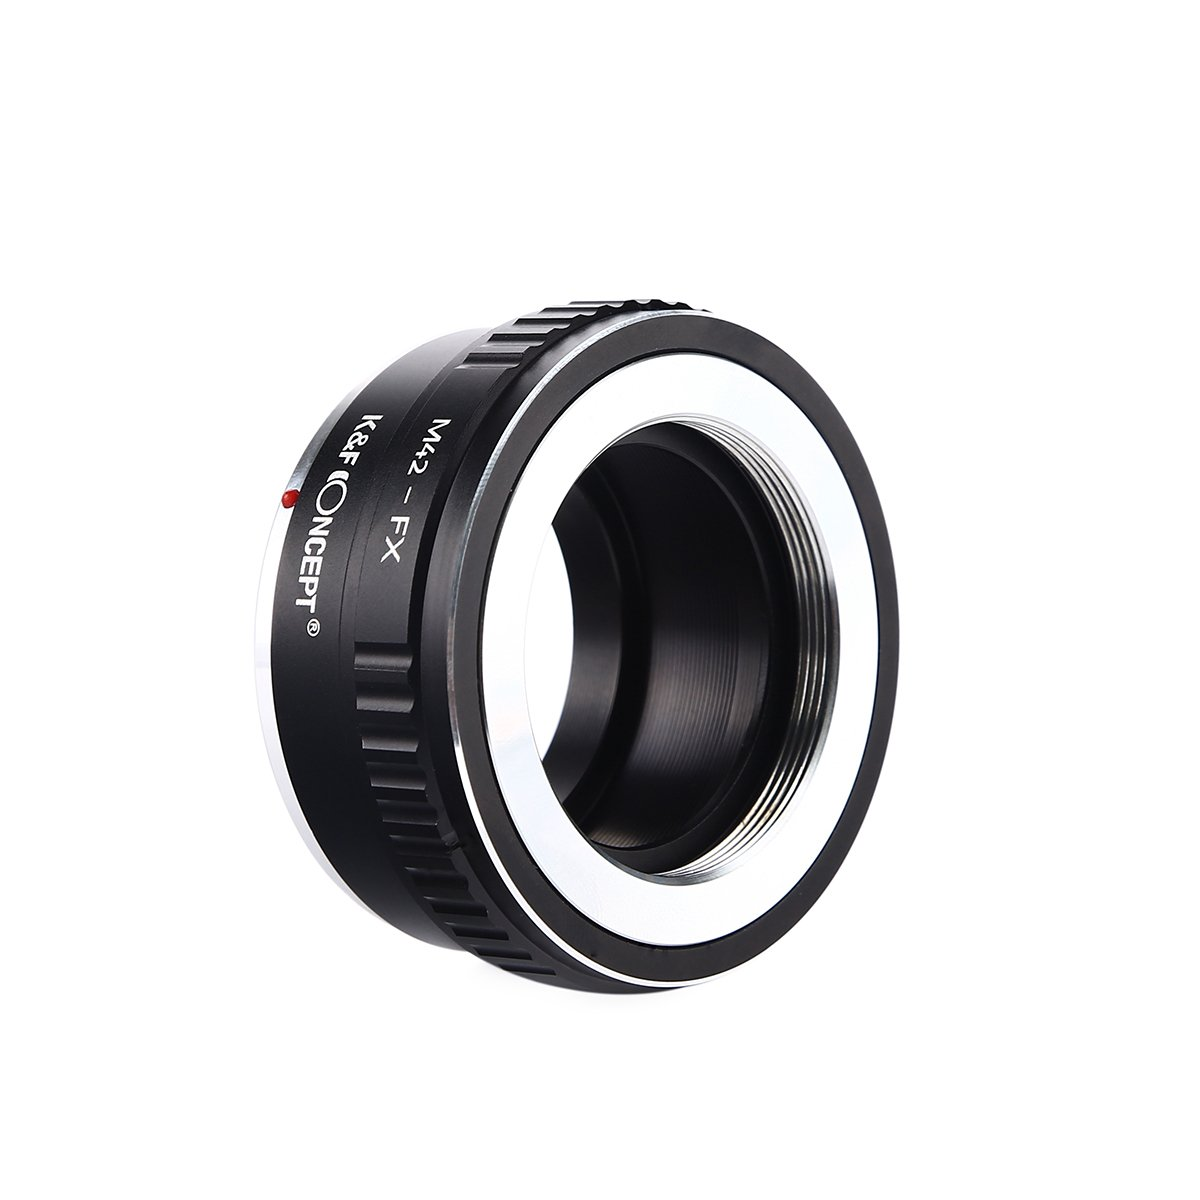 M42-FX K/&F Concept Lens Mount Adapter and Cleaning Cloth for M42 Mount Lenses to Adapt to Fujifilm X-Series Mirrorless Camera Body Hard Plastic Case